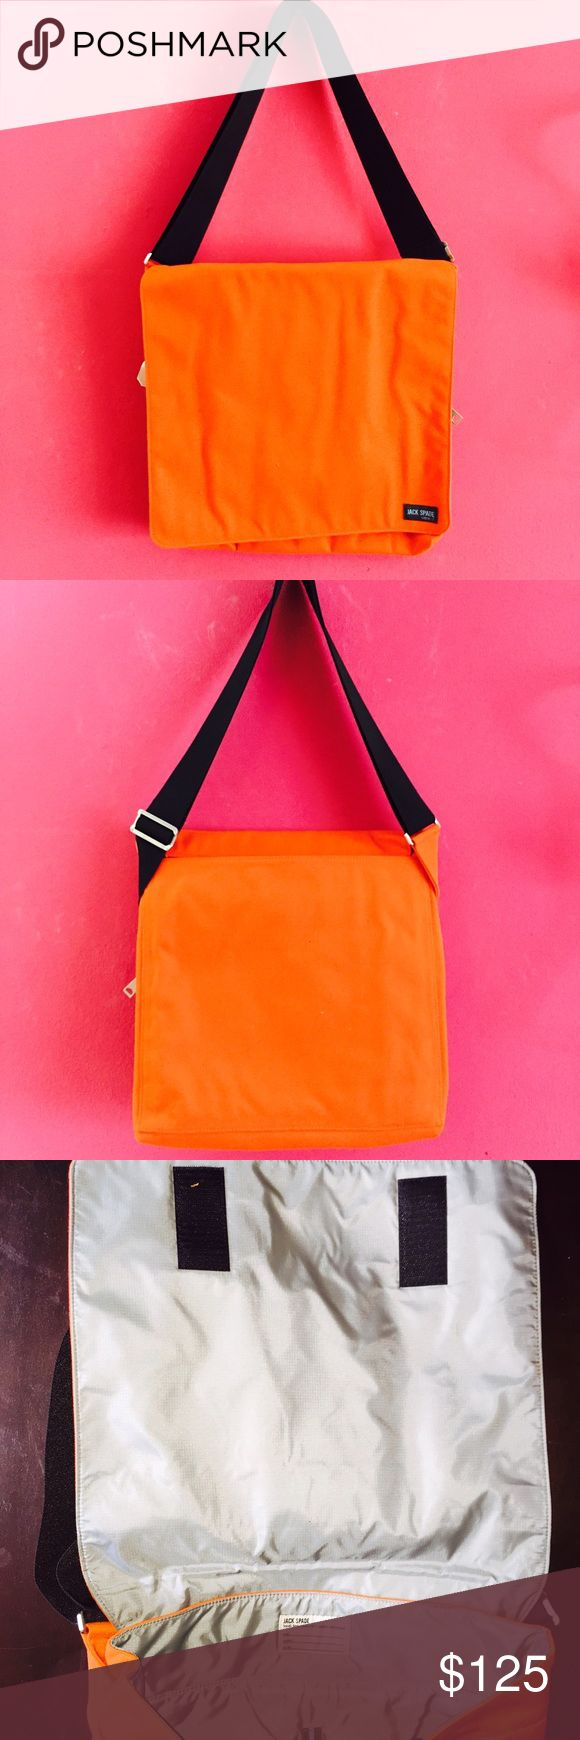 Jack Spade square canvas messenger bag Brand new square orange canvas messenger beg. Jack Spade Bags Messenger Bags